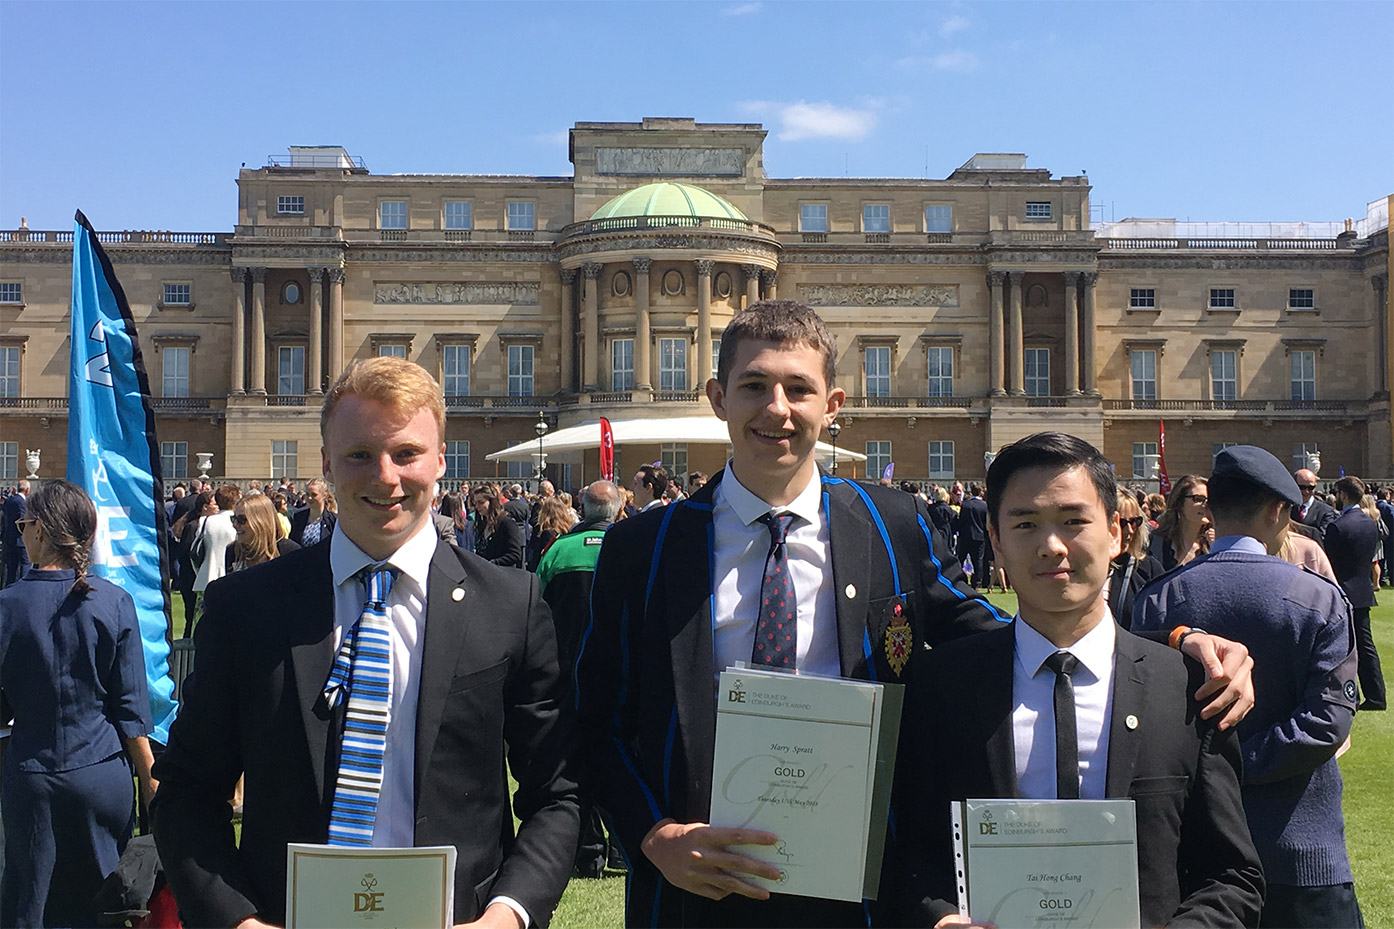 Duke of Edinburgh's Gold Award presentation at Buckingham Palace